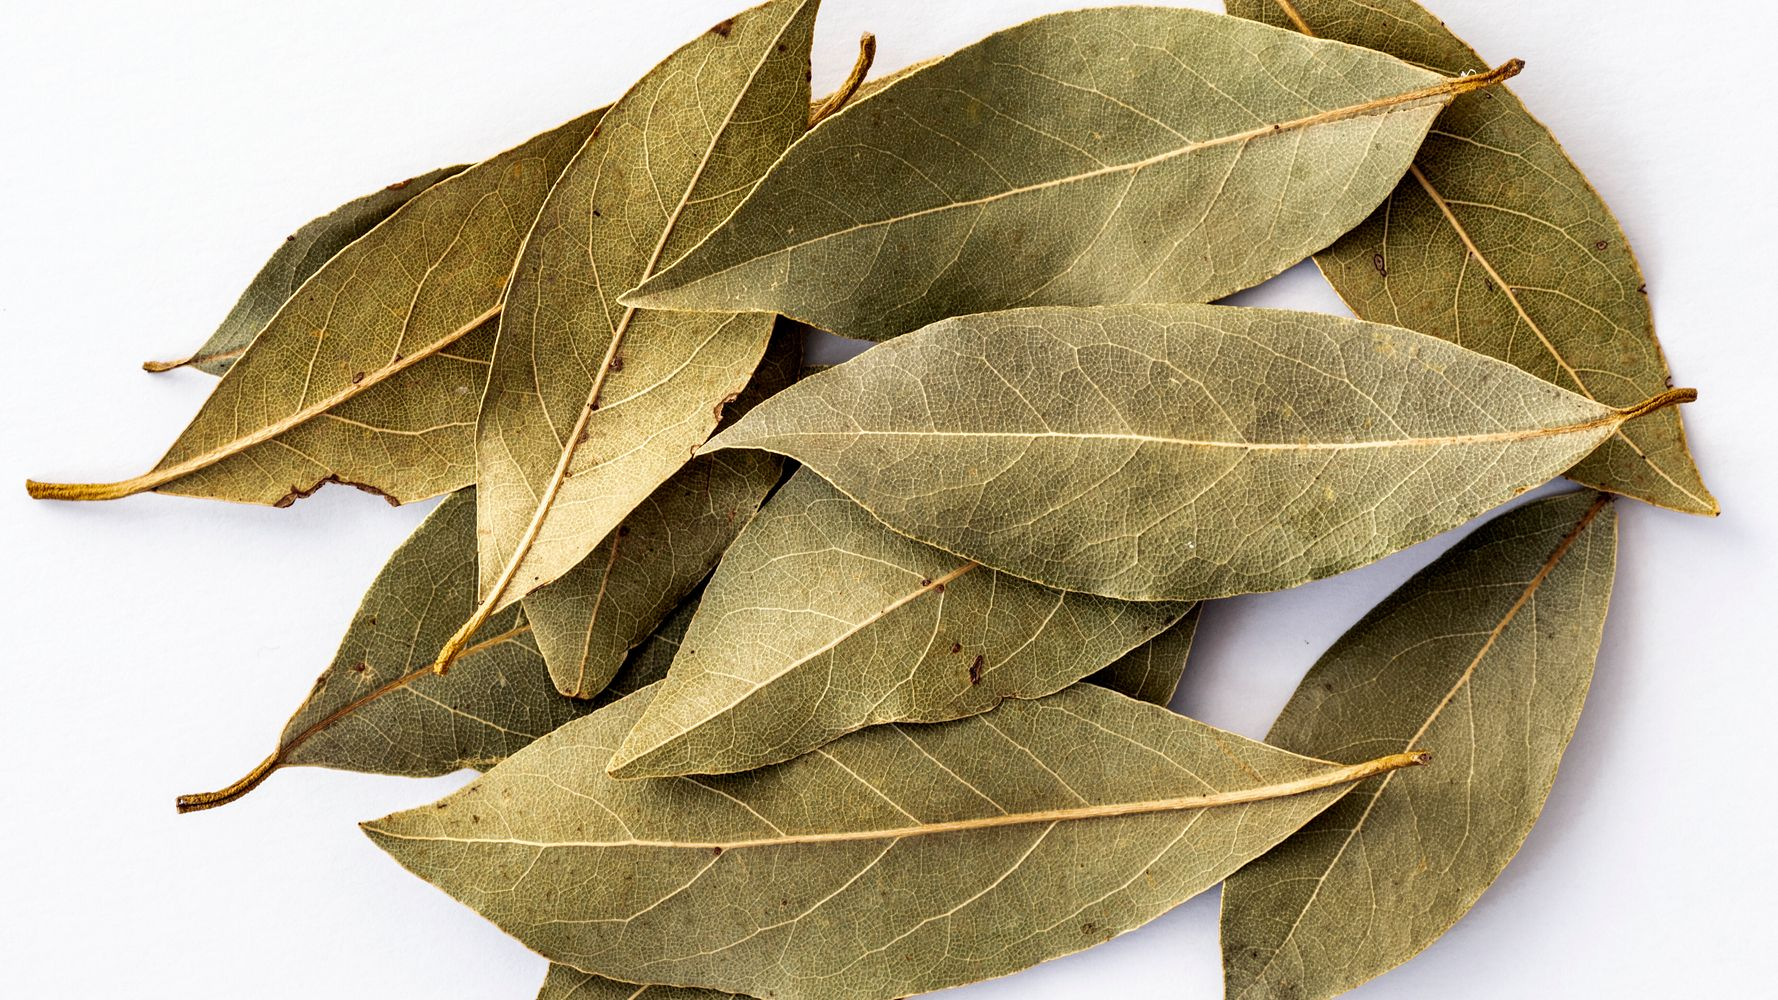 Do Bay Leaves REALLY Add Flavor To Food? Experts Make Their Case.